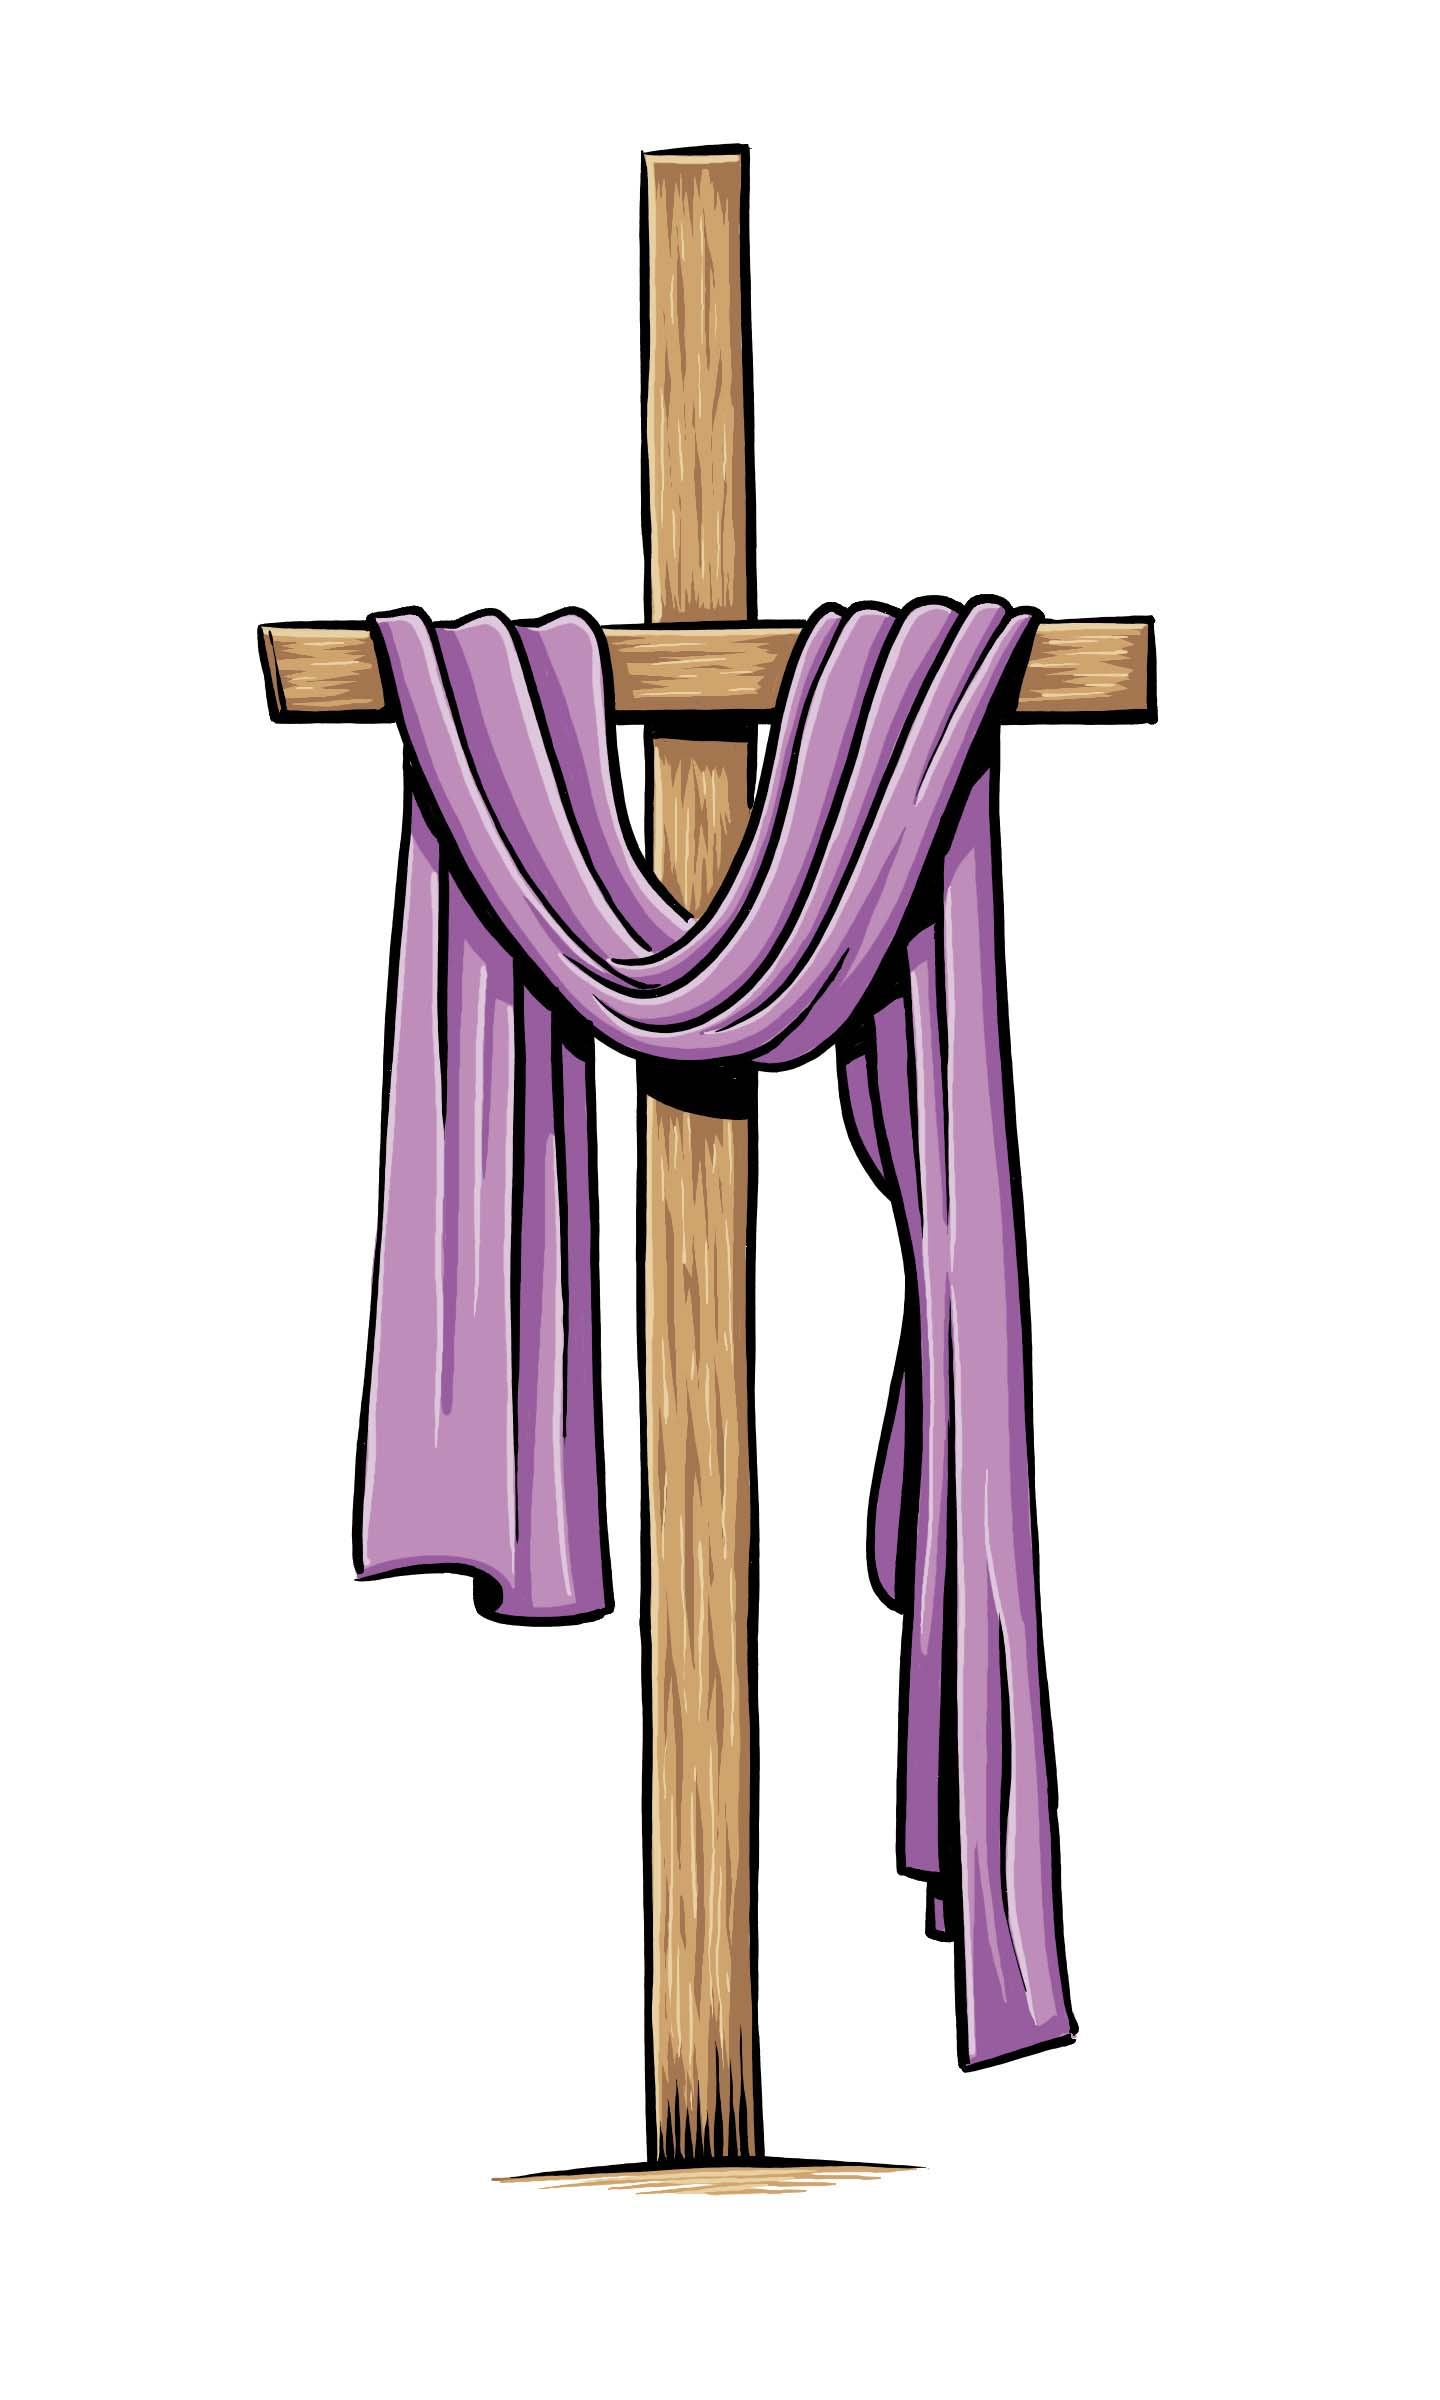 lent purple cross most holy trinity catholic church clip art religious easter figures clipart religious easter free